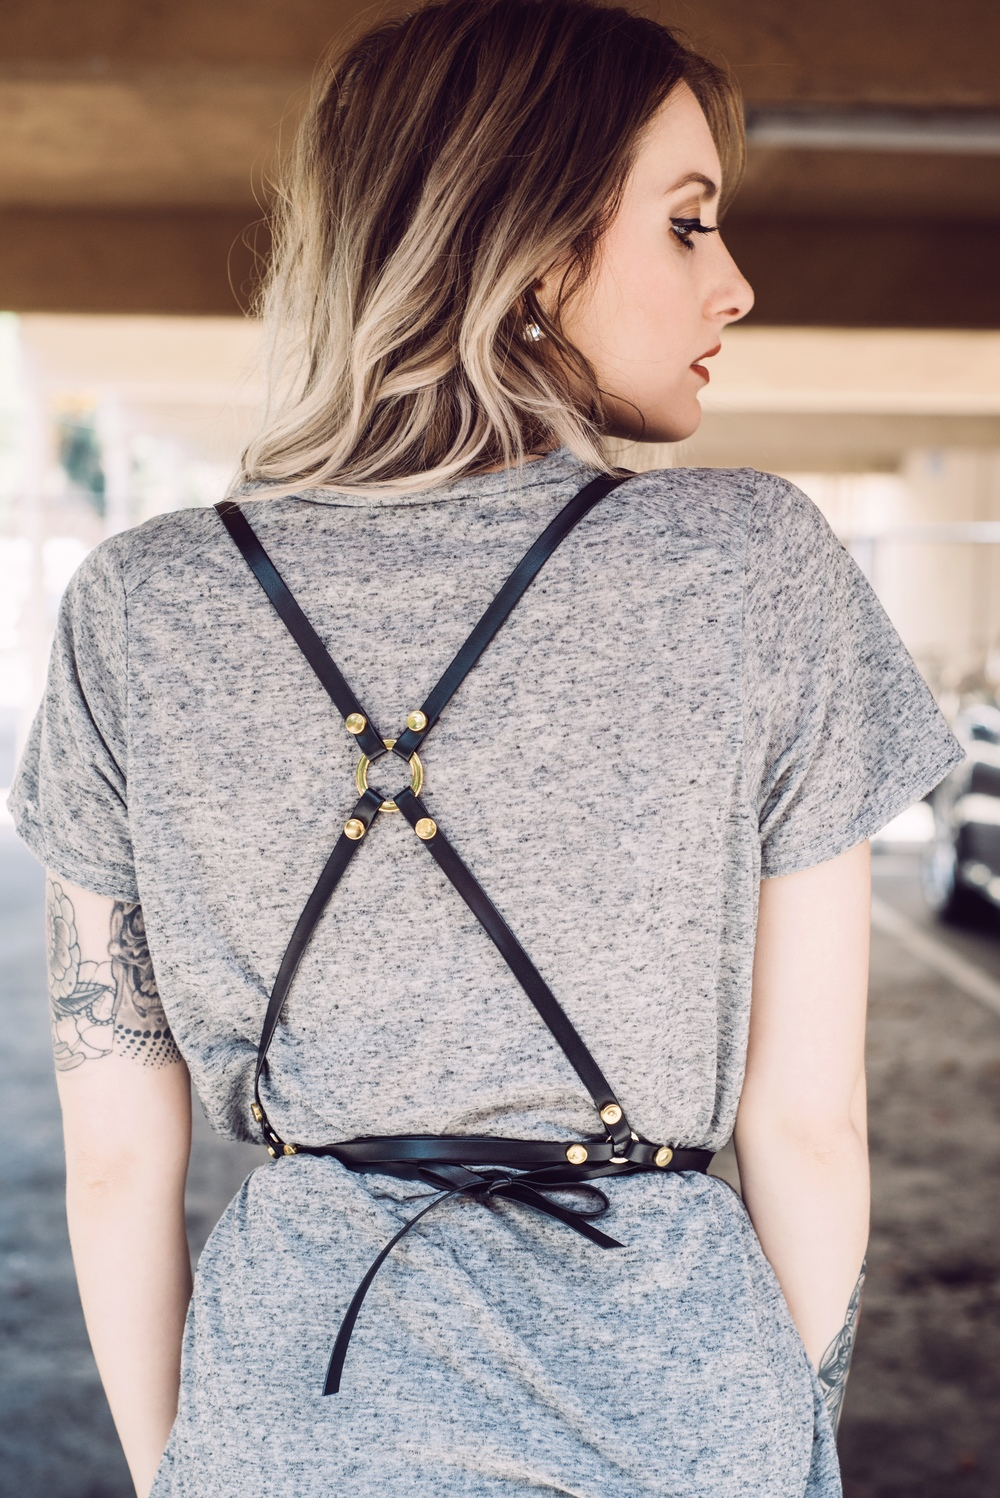 CatHaus_DaintyHarness_Sarah_back.jpeg